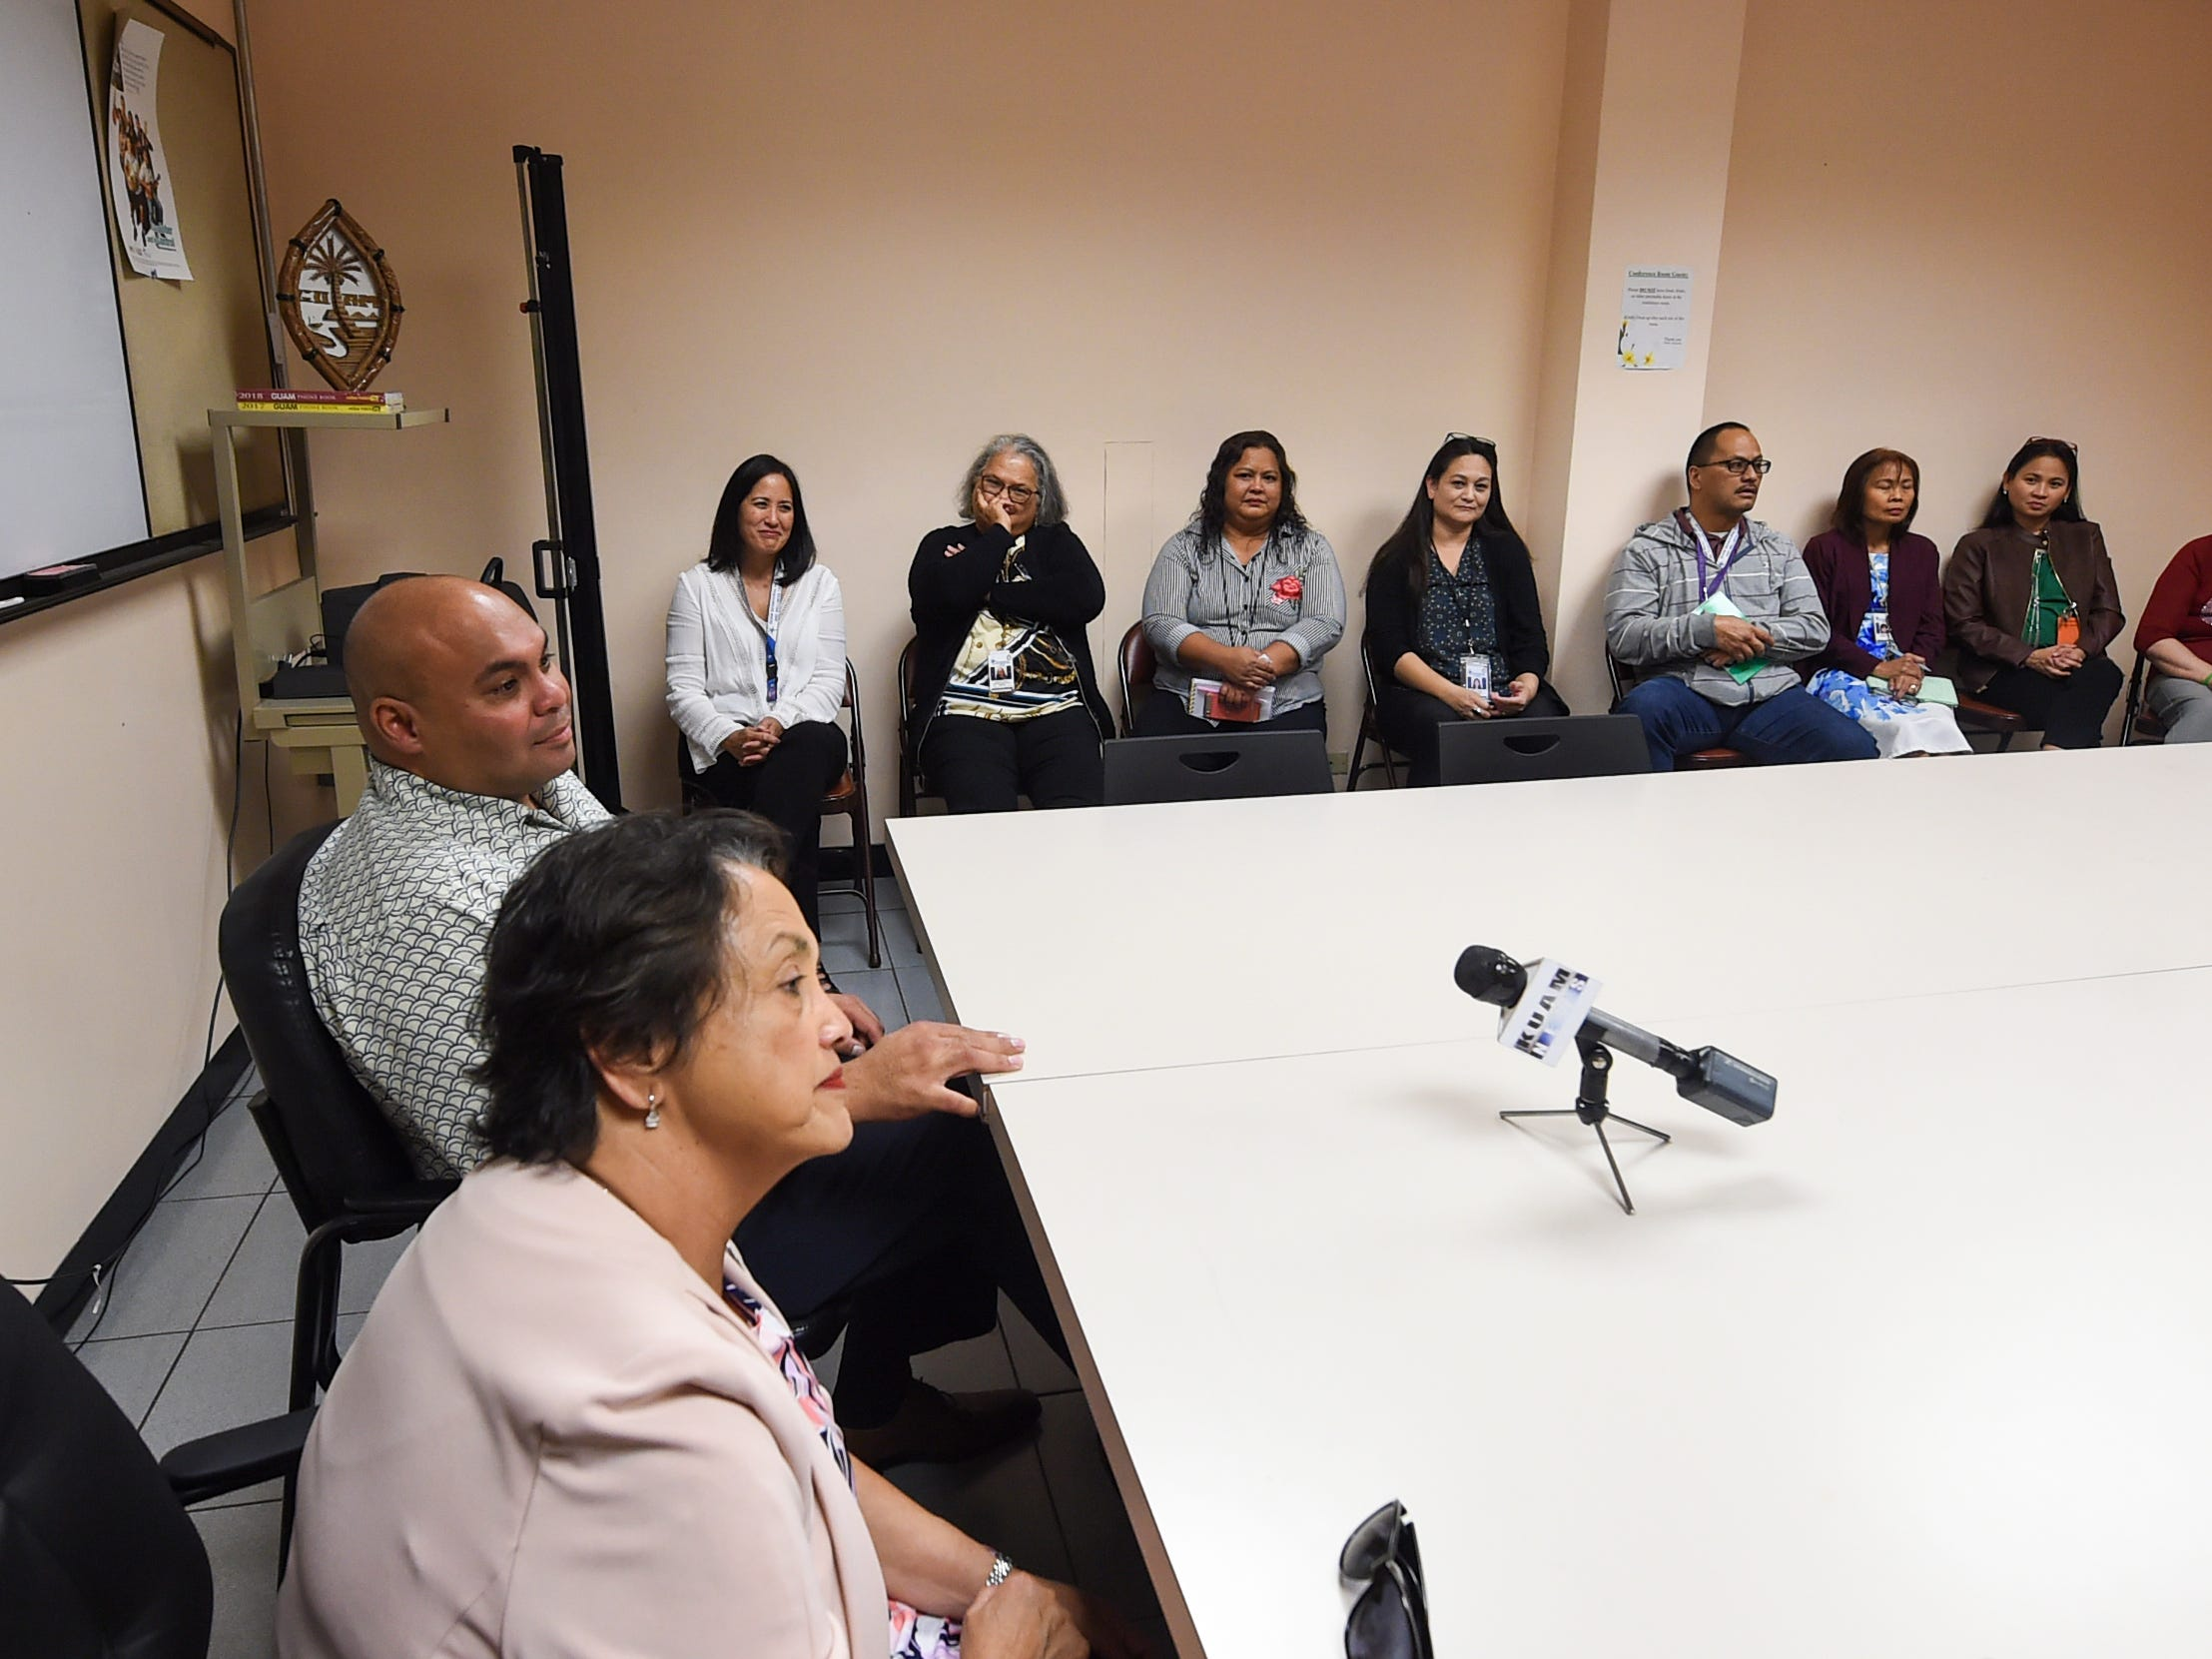 Gov. Lou Leon Guerrero and Lt. Gov. Josh Tenorio meet with members of the Guam Behavioral Health and Wellness Center management as part of their tour of Guam's government agencies in Tamuning on Feb. 12, 2019.